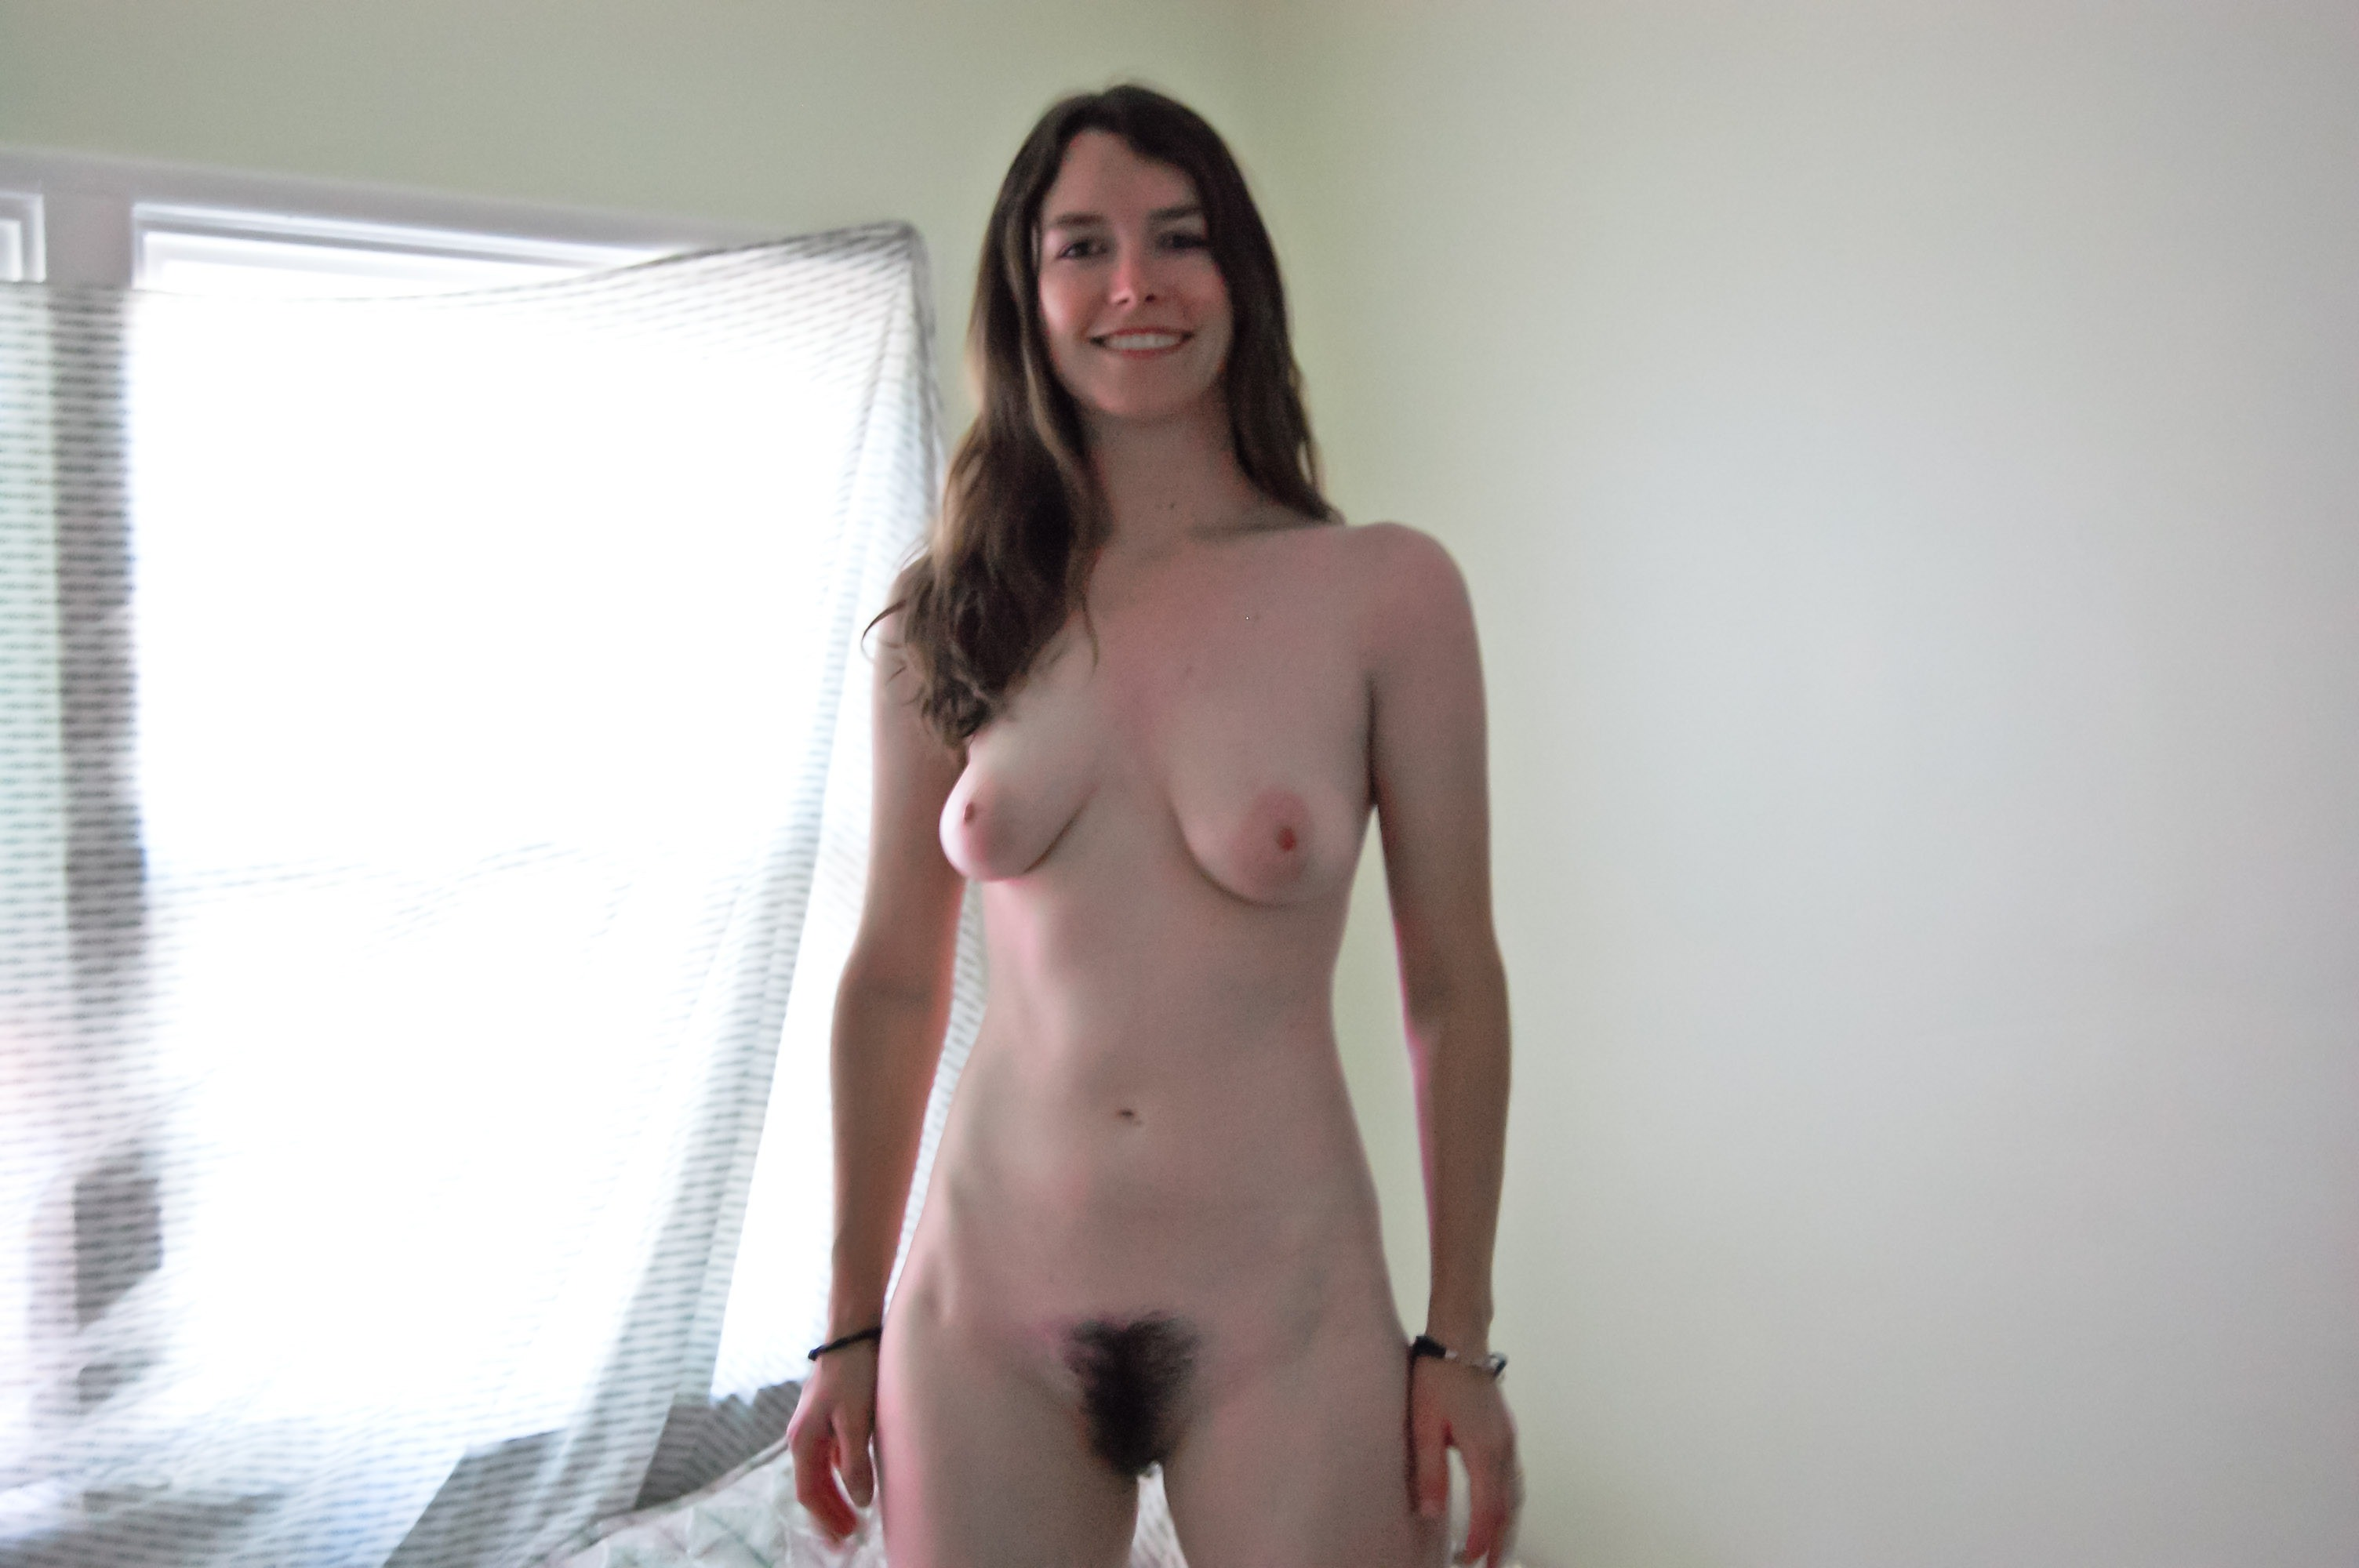 you re welcum may is masturbation month solo guys Amateur, Degraded, Embarrassed, Hairy, Homemade, Hot, Housewife, Humiliation, Mateur, Milf, Nude, Public, Reluctant, Shy, Submissive, Wife